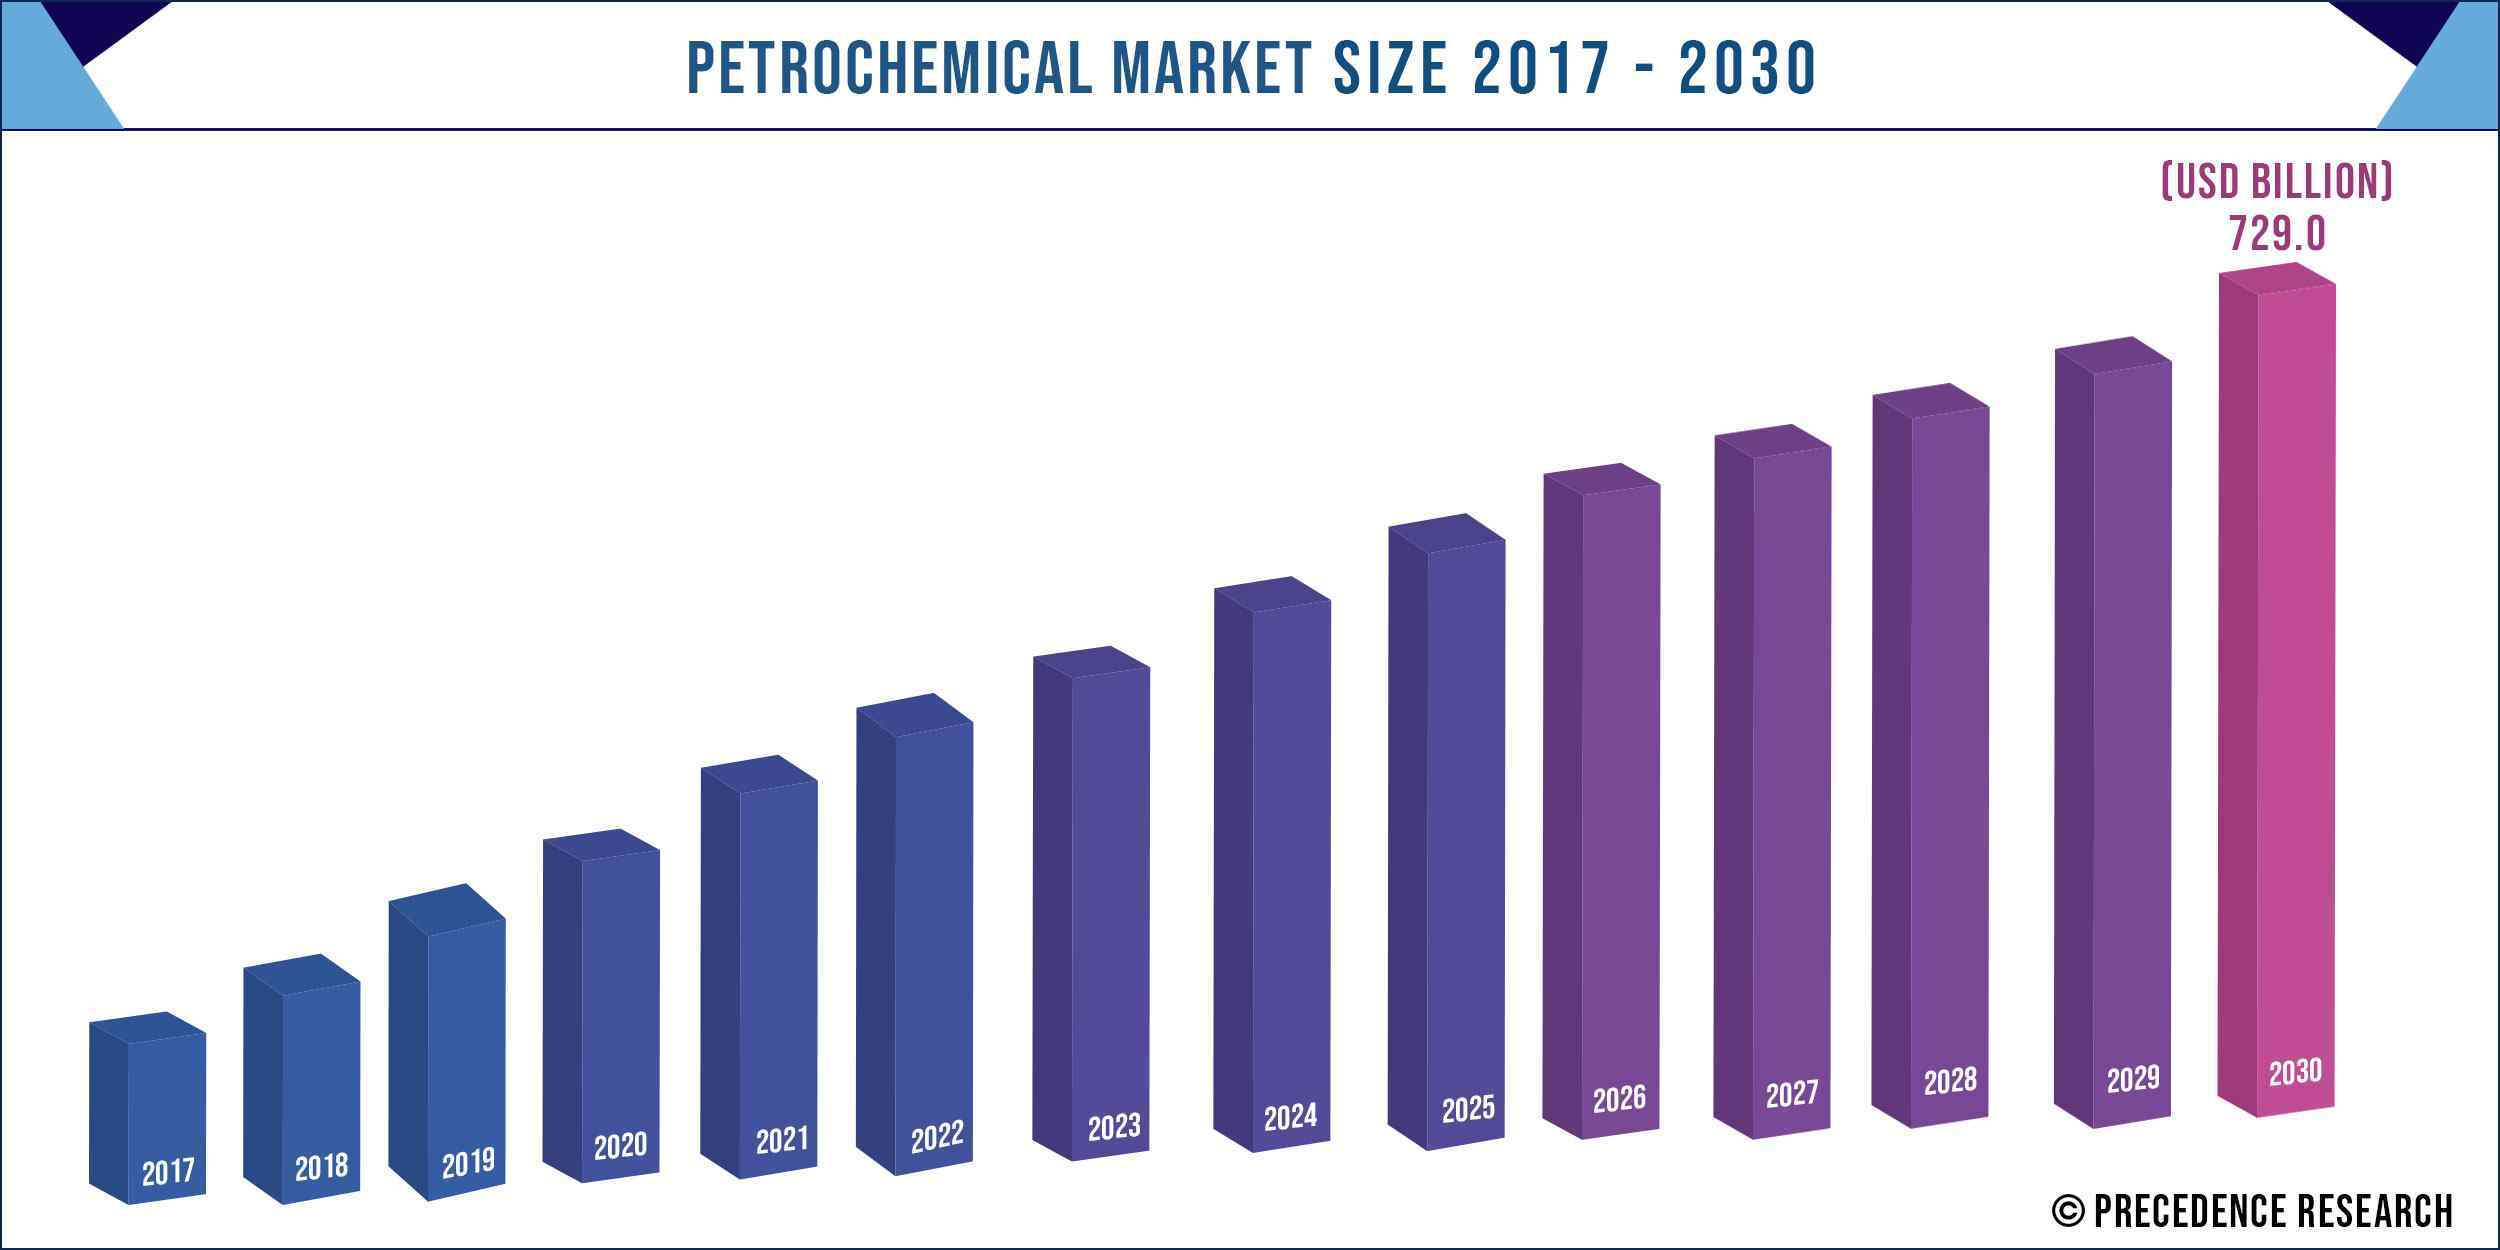 Petrochemical Market Size 2017 to 2030